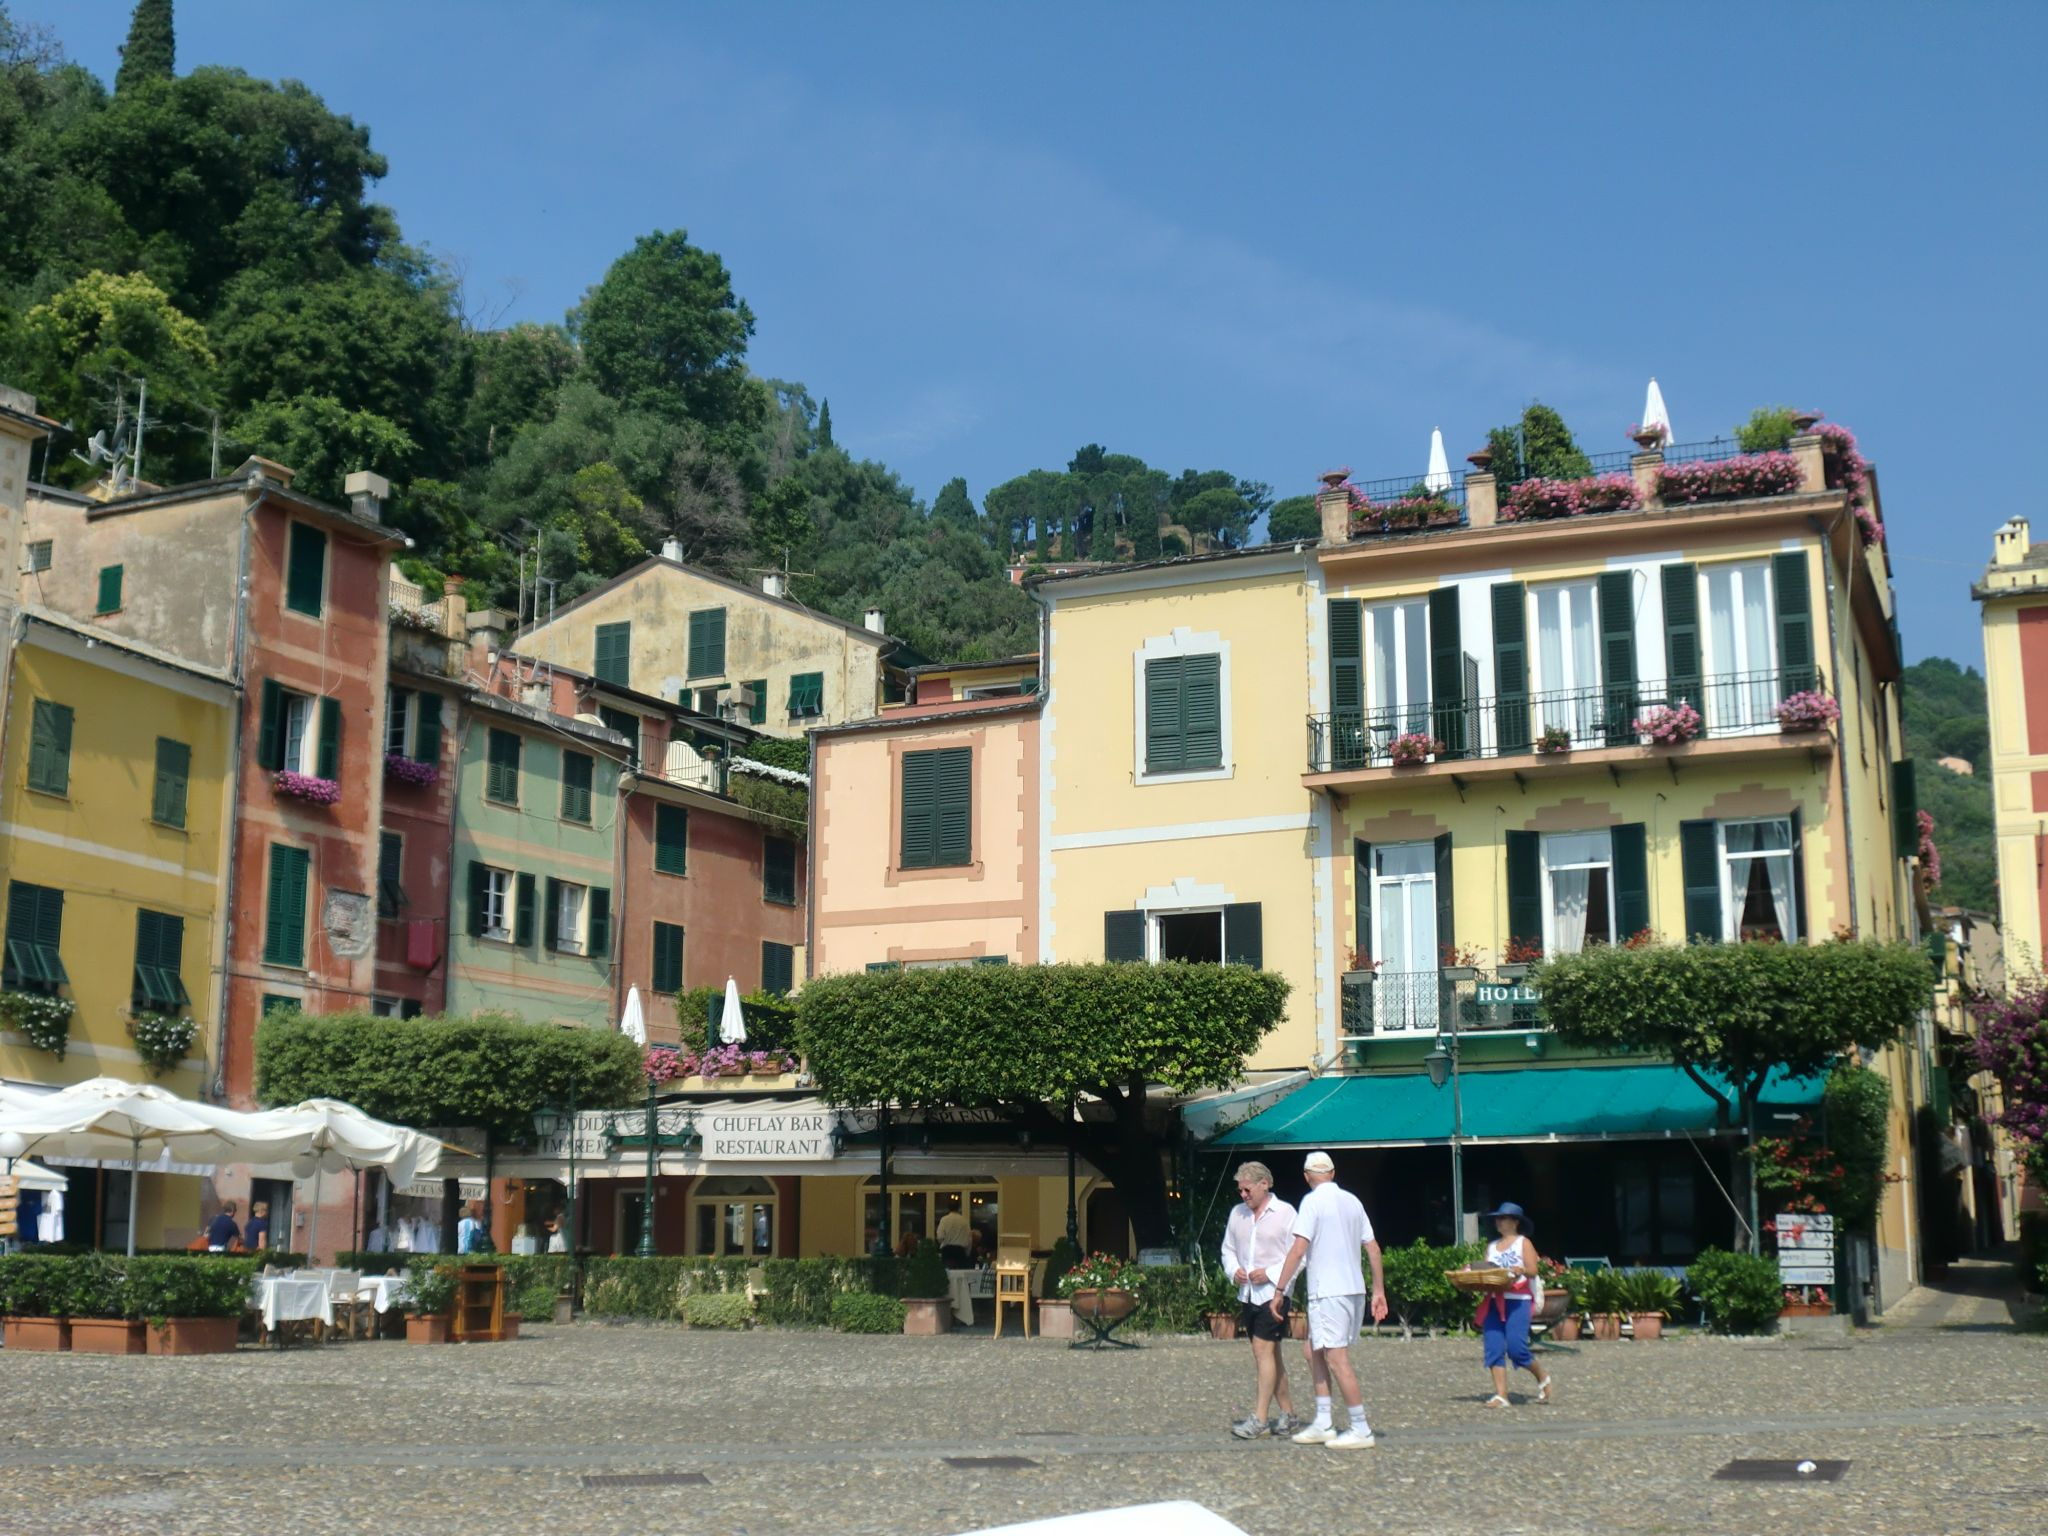 Portofino 4 - Portofino: a small pearl on the sea